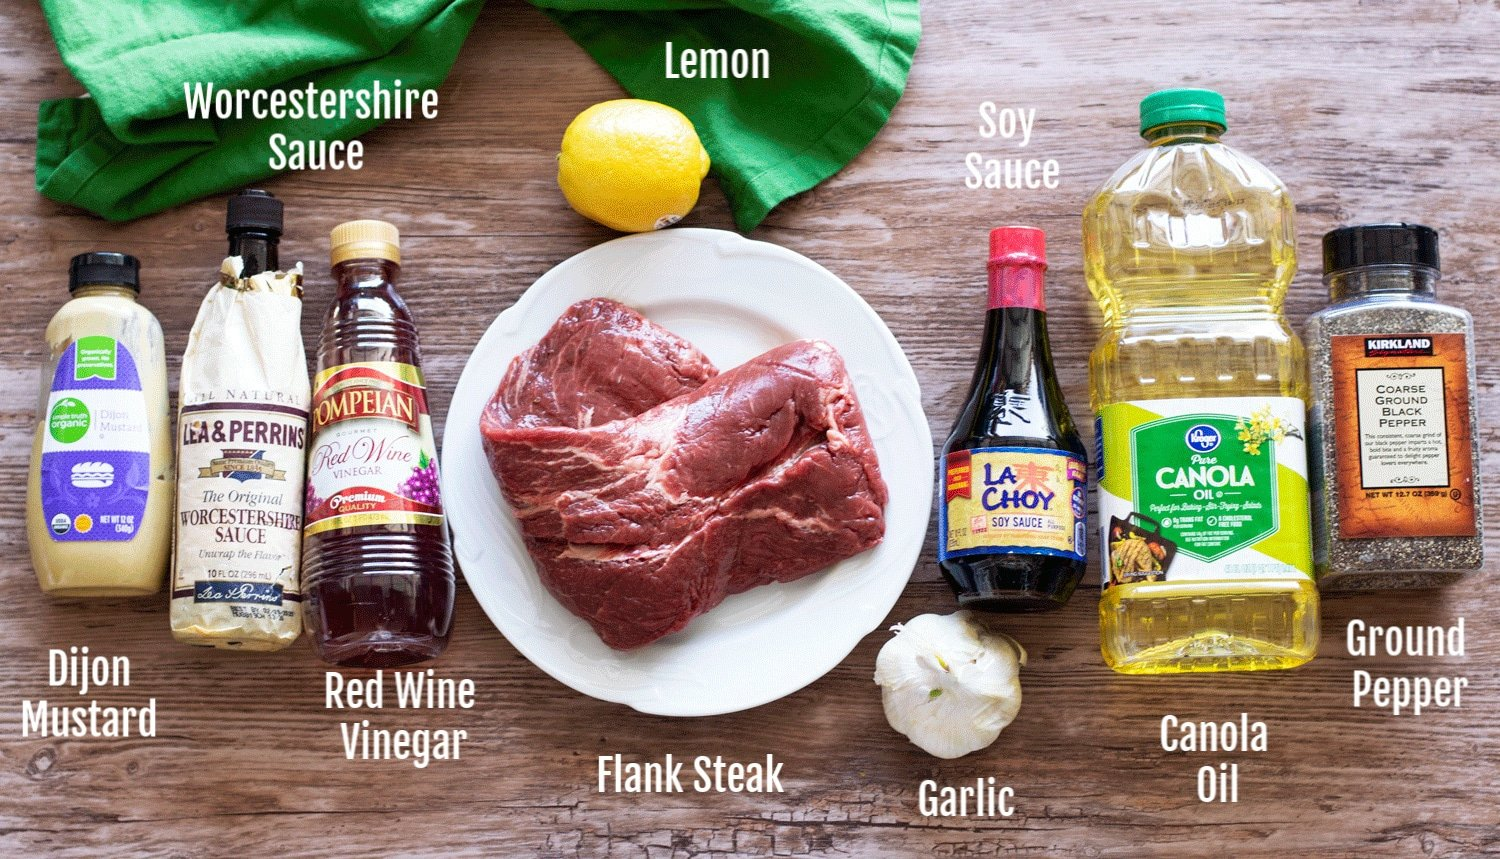 Ingredients on a wooden counter to make a steak marinade.